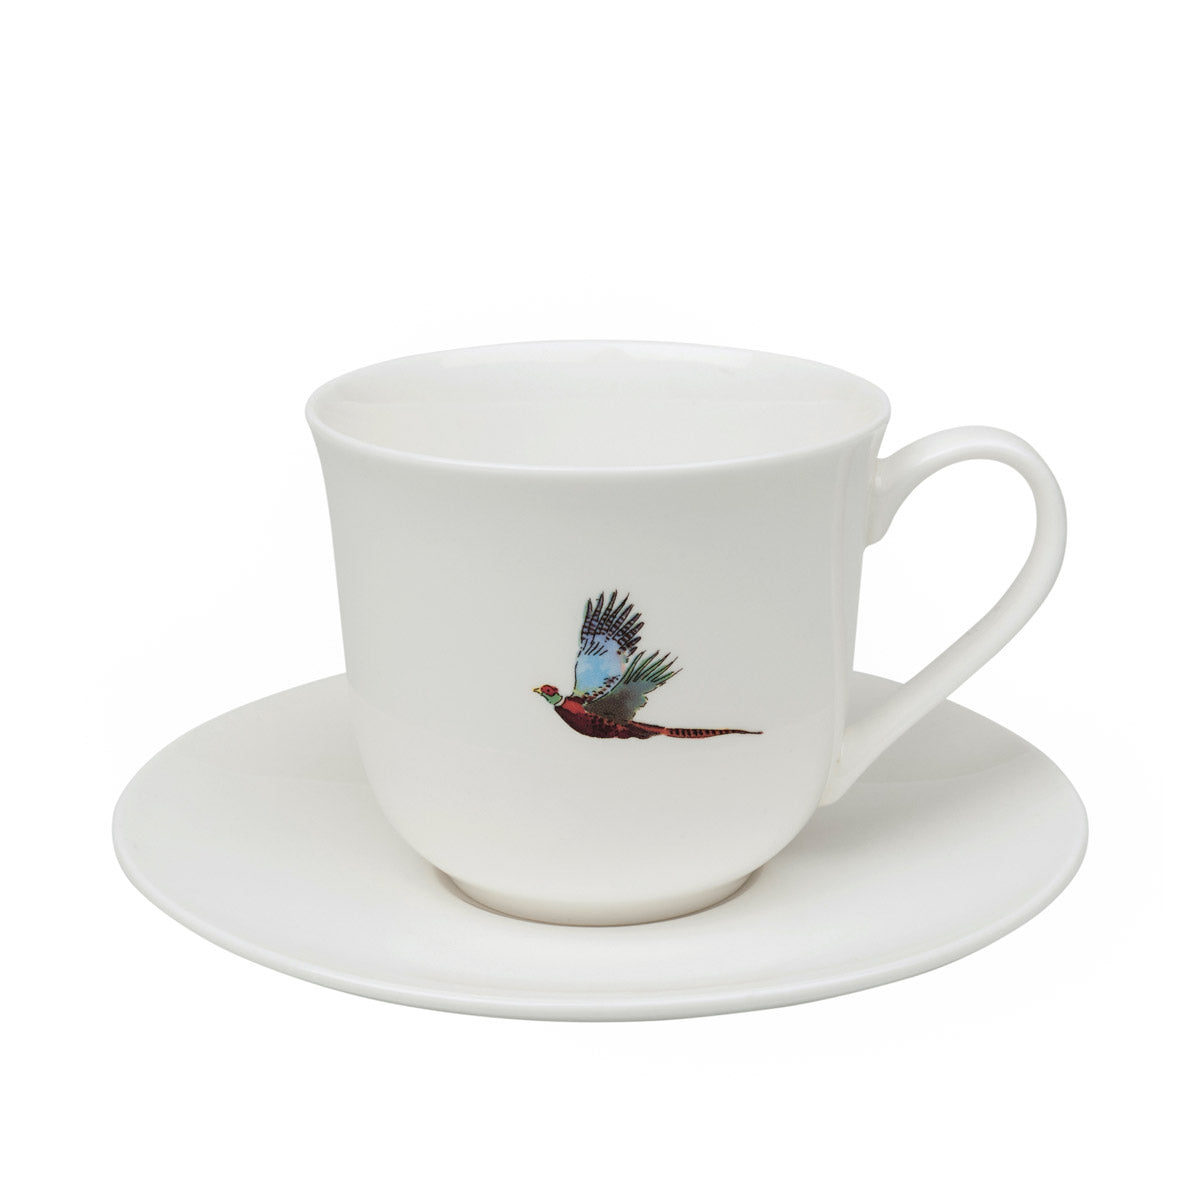 Pheasant Teacup and Saucer